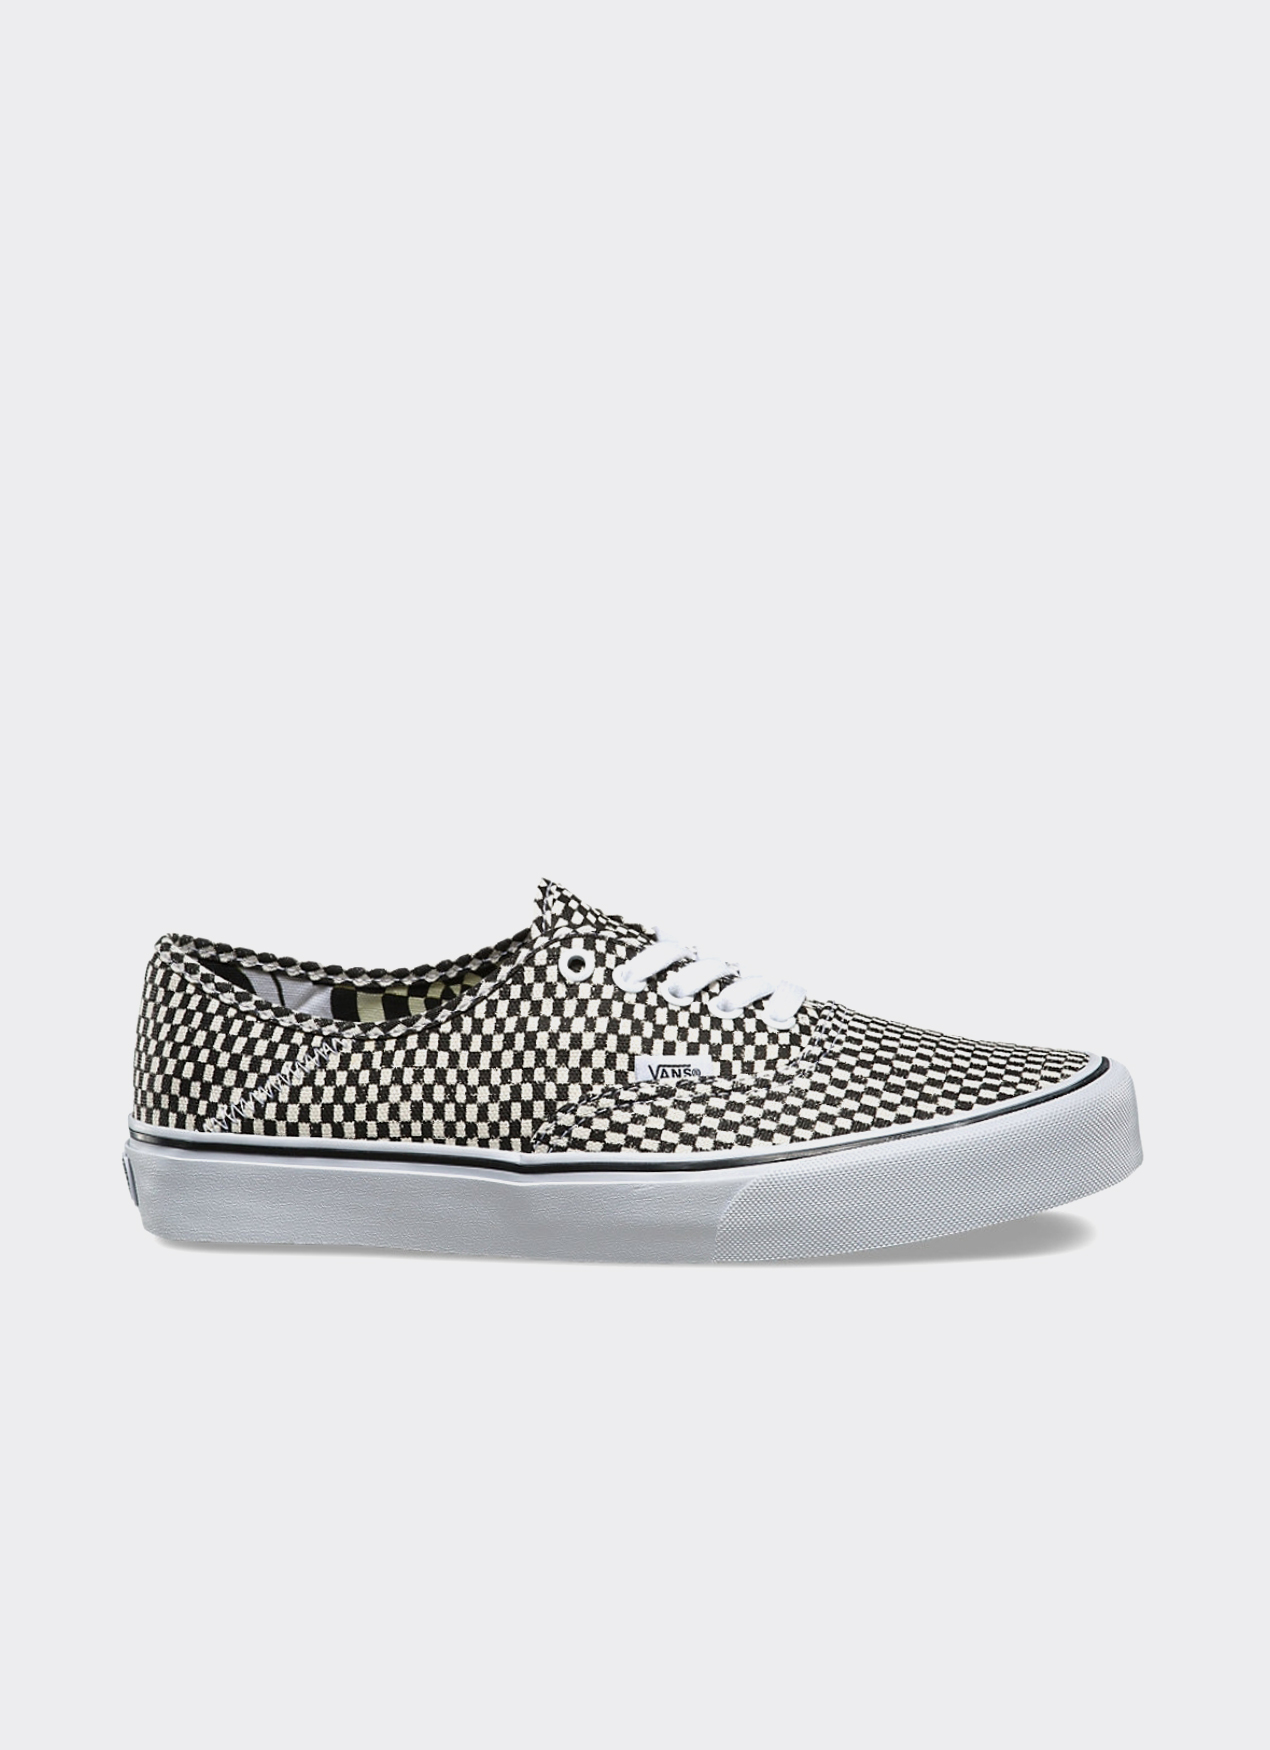 804d02135295ca ... VANS Checkered Black   White Authentic SF Wade Goodall Low Top Sneakers  ...